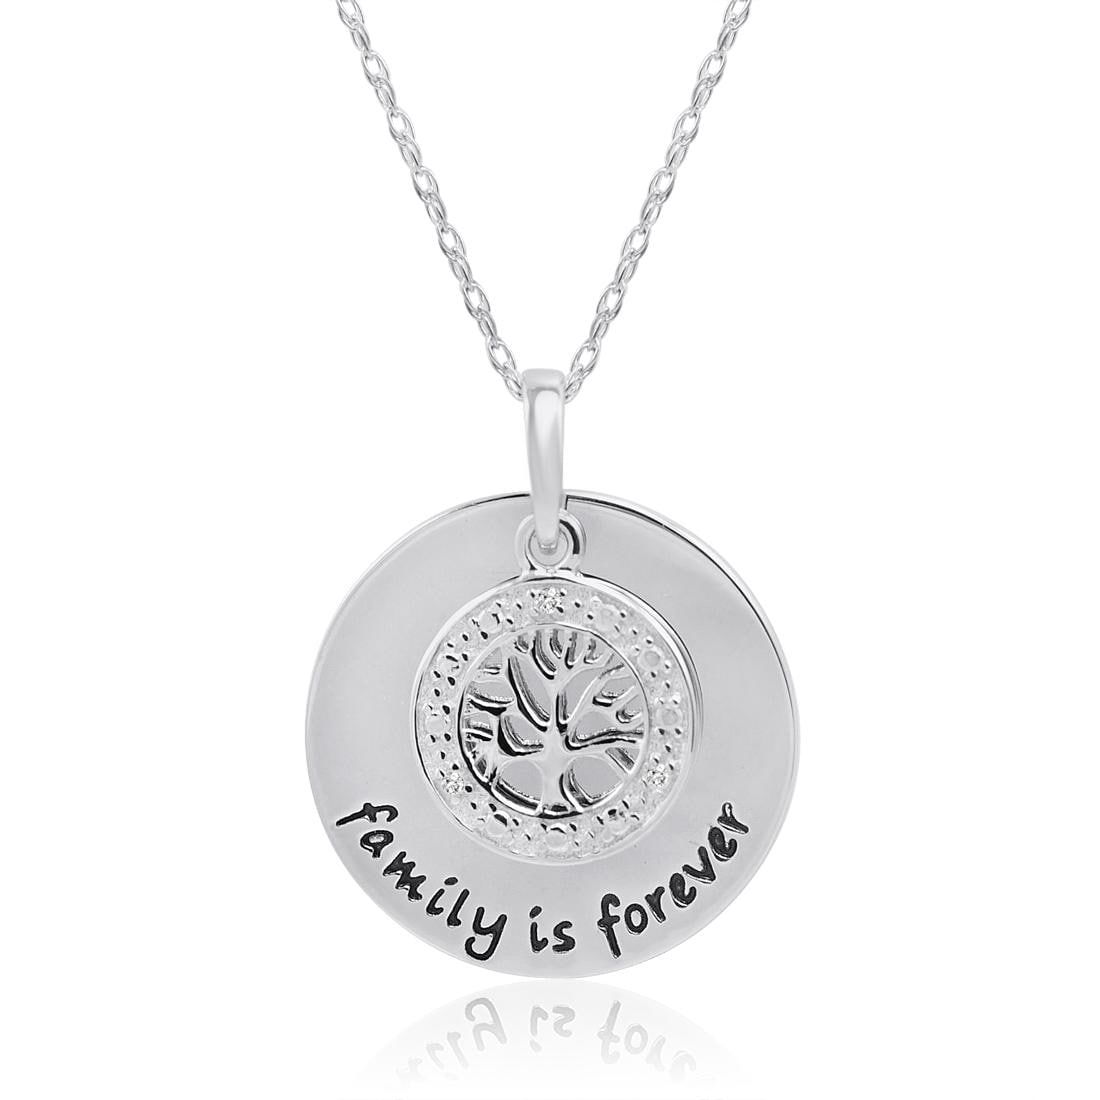 Amanda Rose Family is Forevery Diamond Disc Pendant - Necklace in Sterling Silver